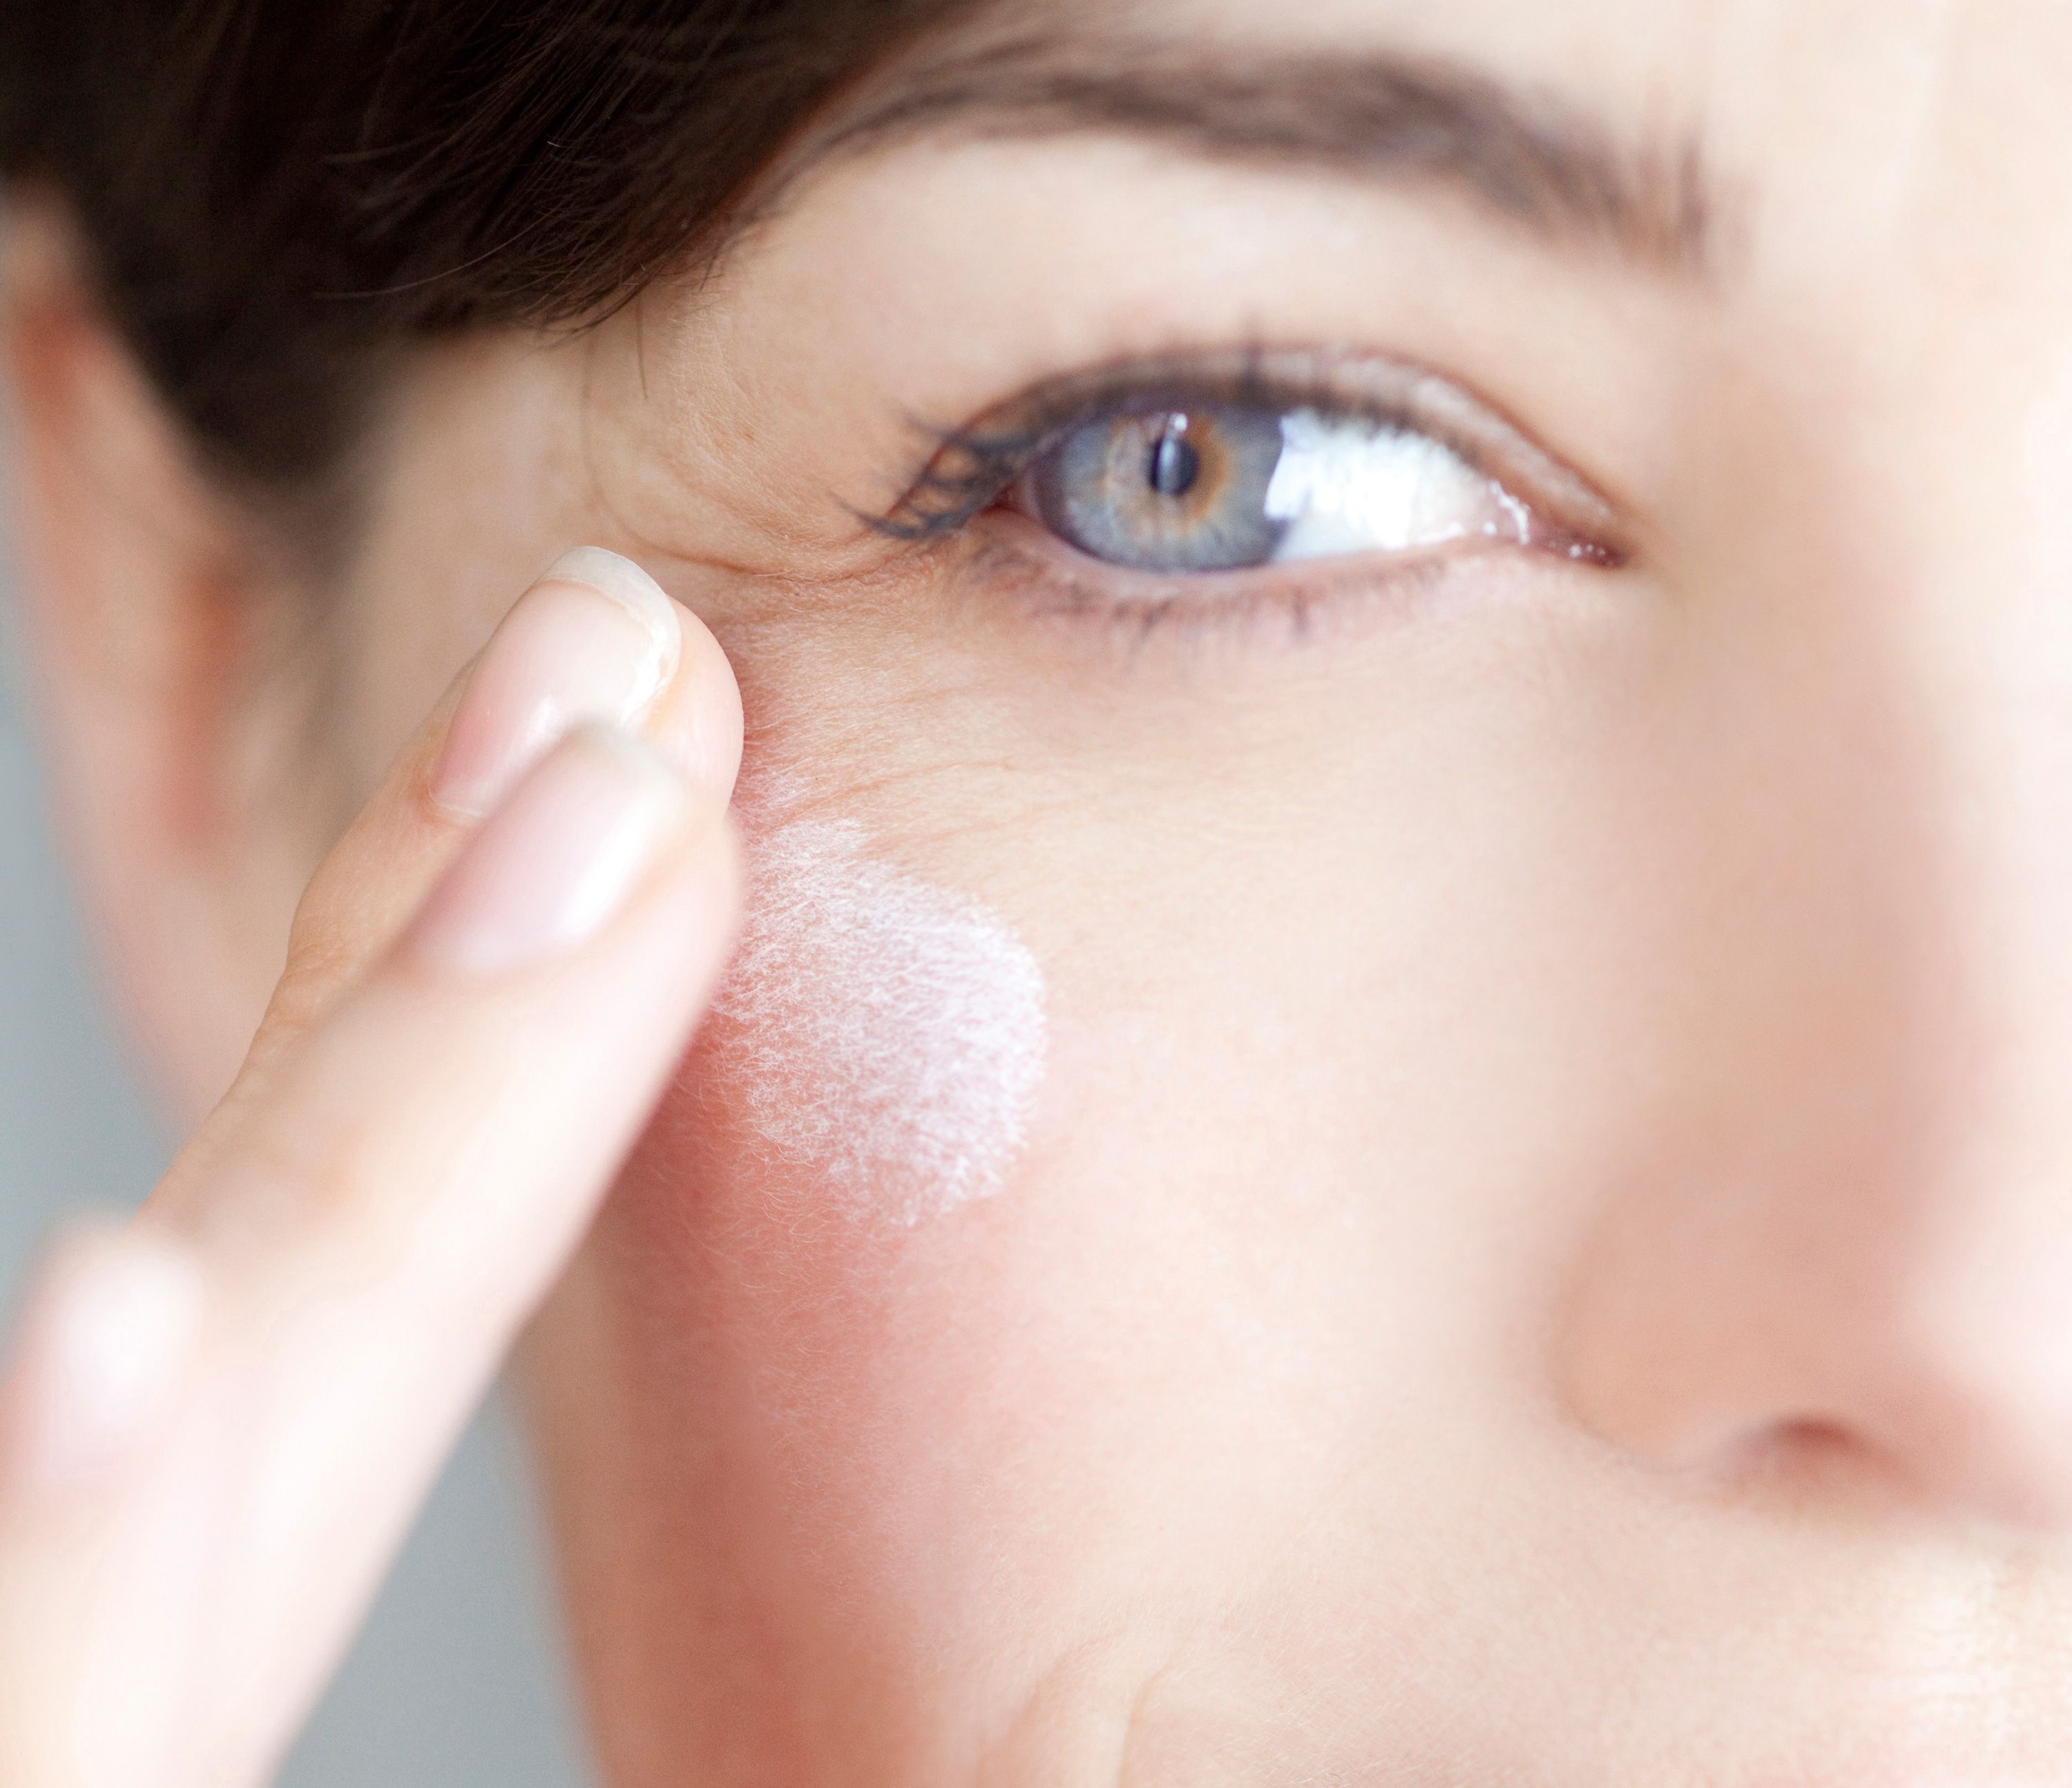 You CAN get rid of dark eye circles, says skincare expert – and this is how